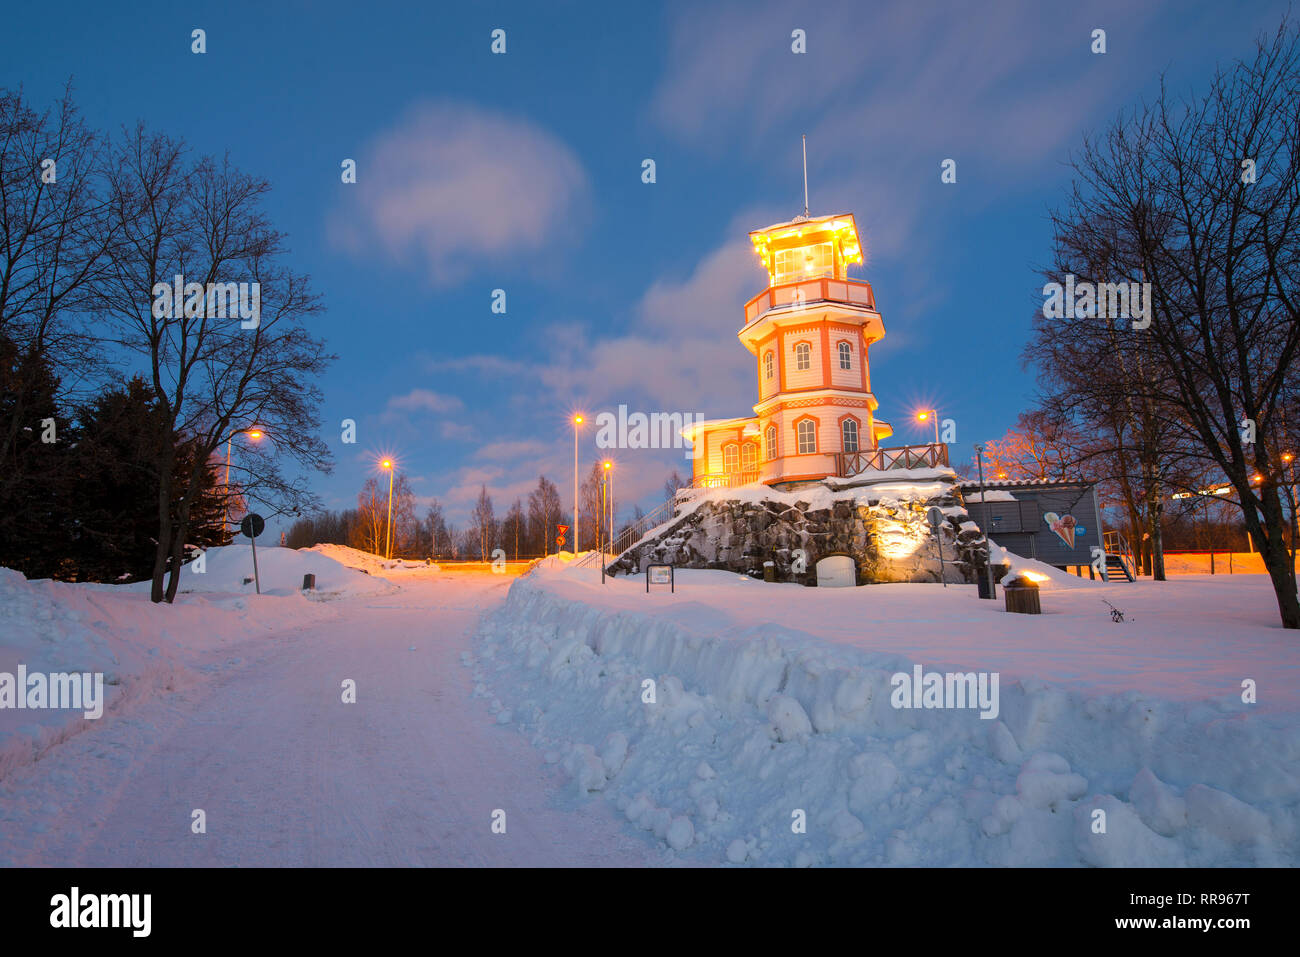 Cafee on top of the ruins of Oulu Castle, Finland - Stock Image